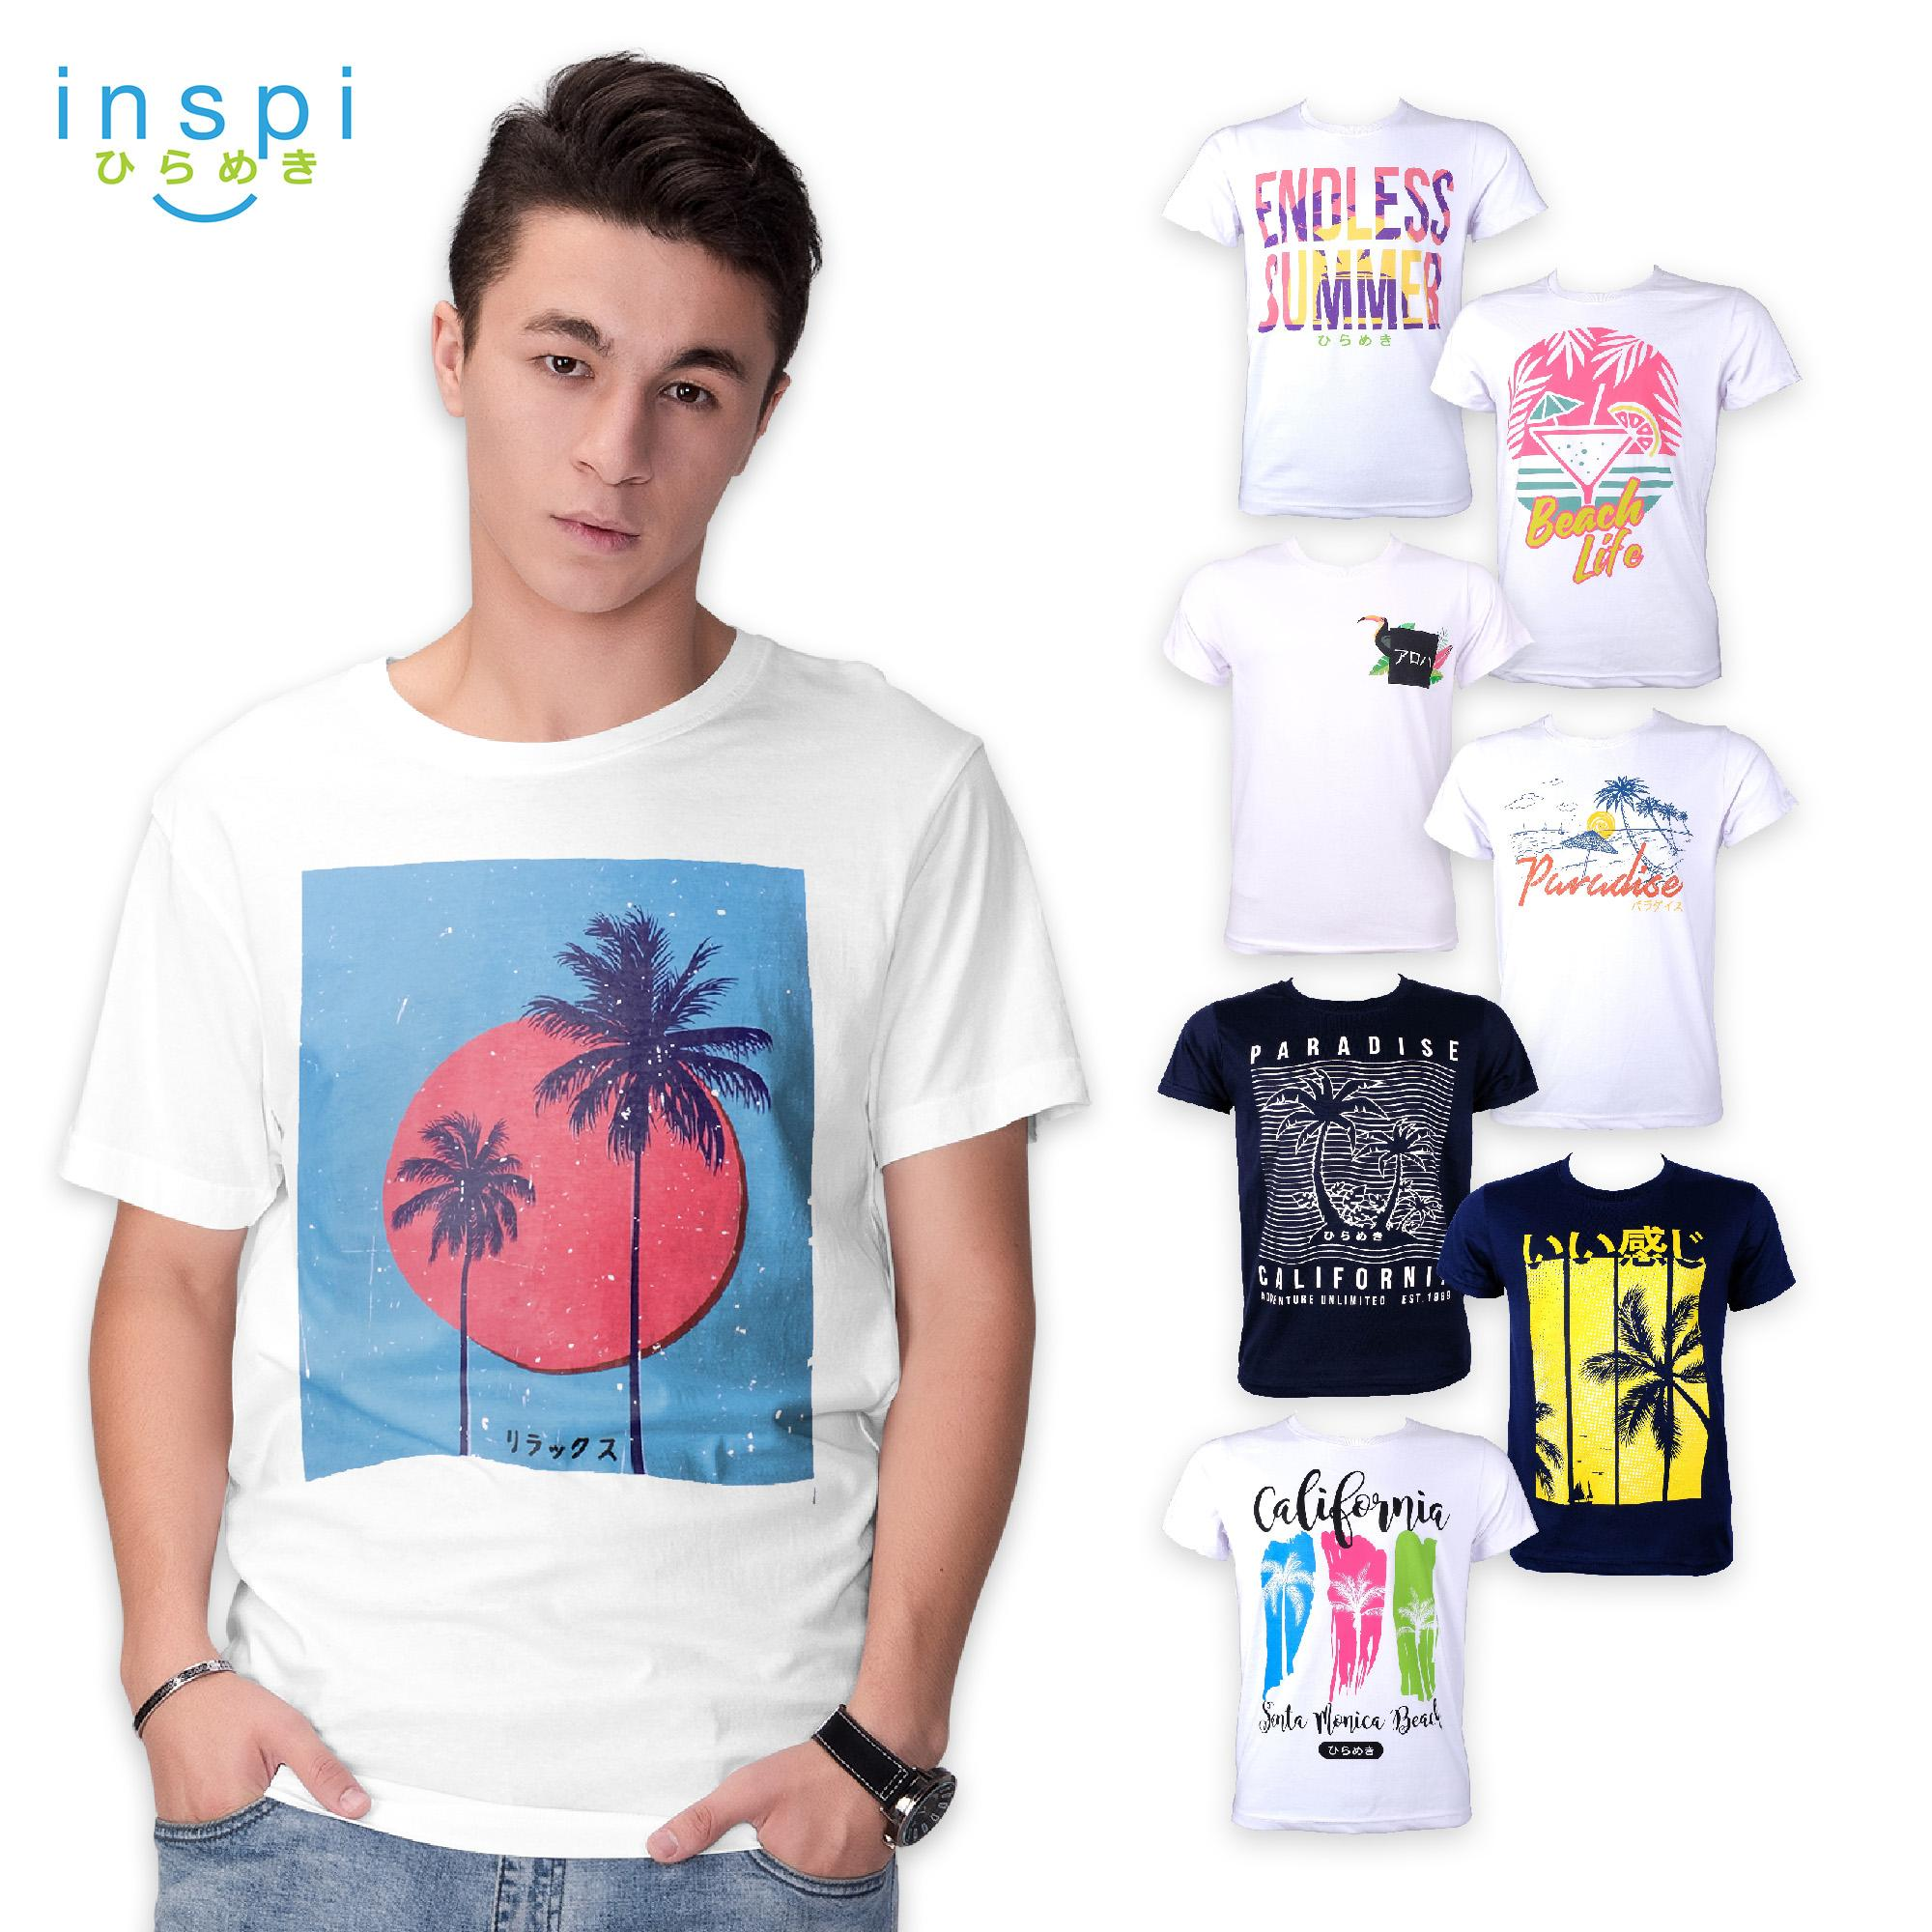 10ddf777fc INSPI Tees Summer Collection tshirt printed graphic tee Mens t shirt shirts  for men tshirts sale